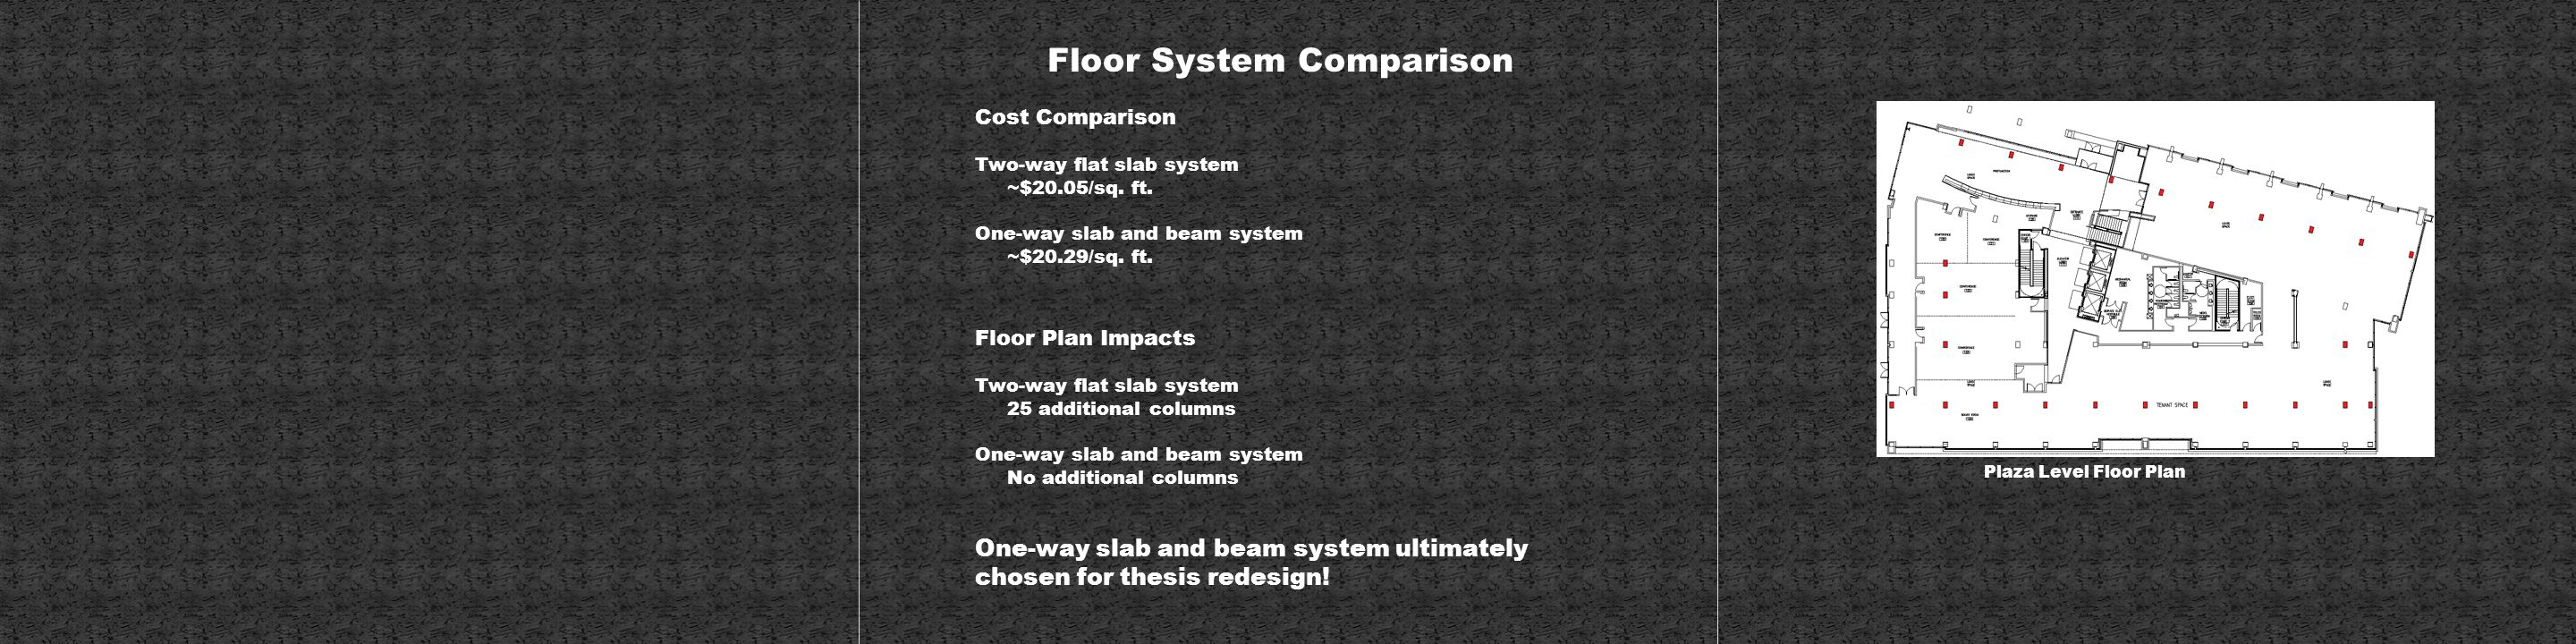 Floor System Comparison Cost Comparison Two-way flat slab system ~$20.05/sq.